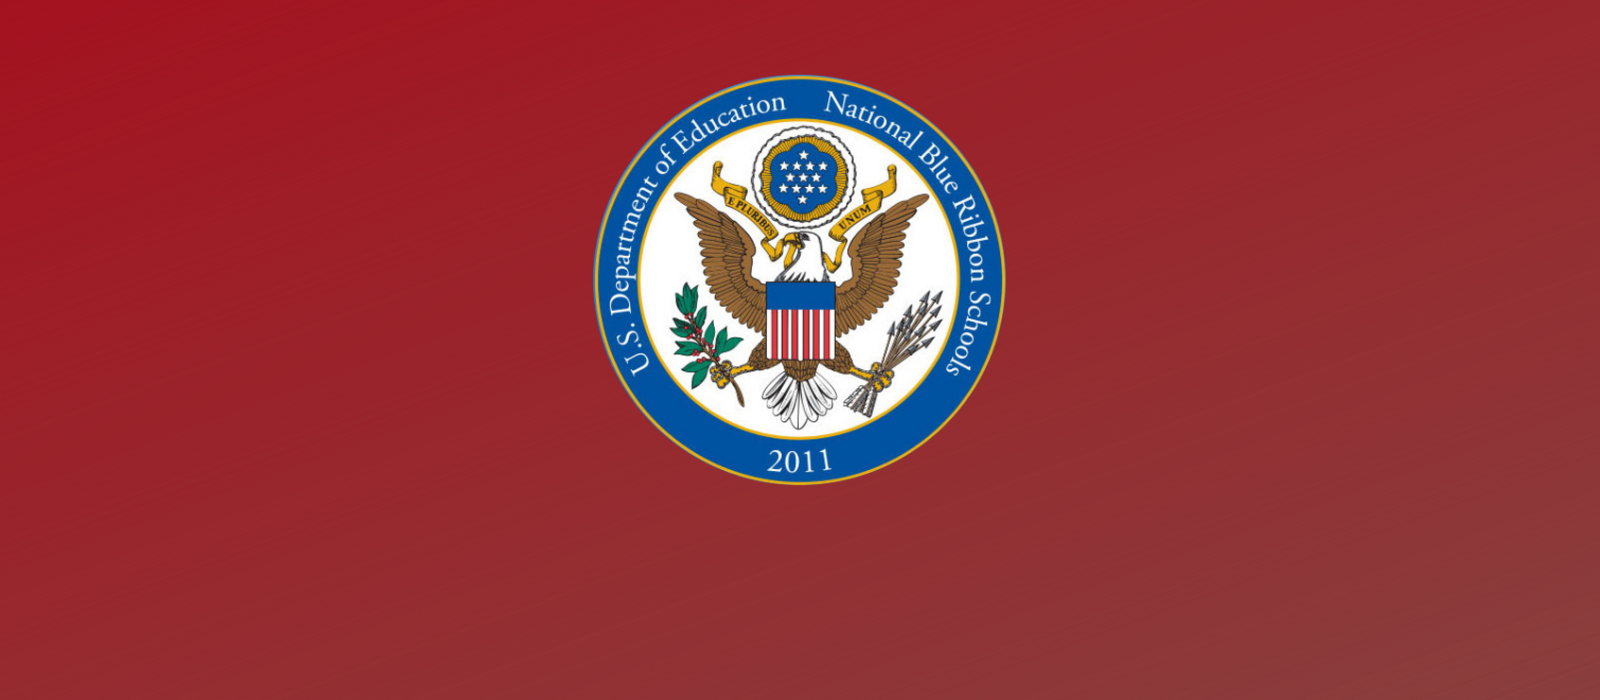 Bishop School was a recipient of the  2011 National Blue Ribbon Schools Award